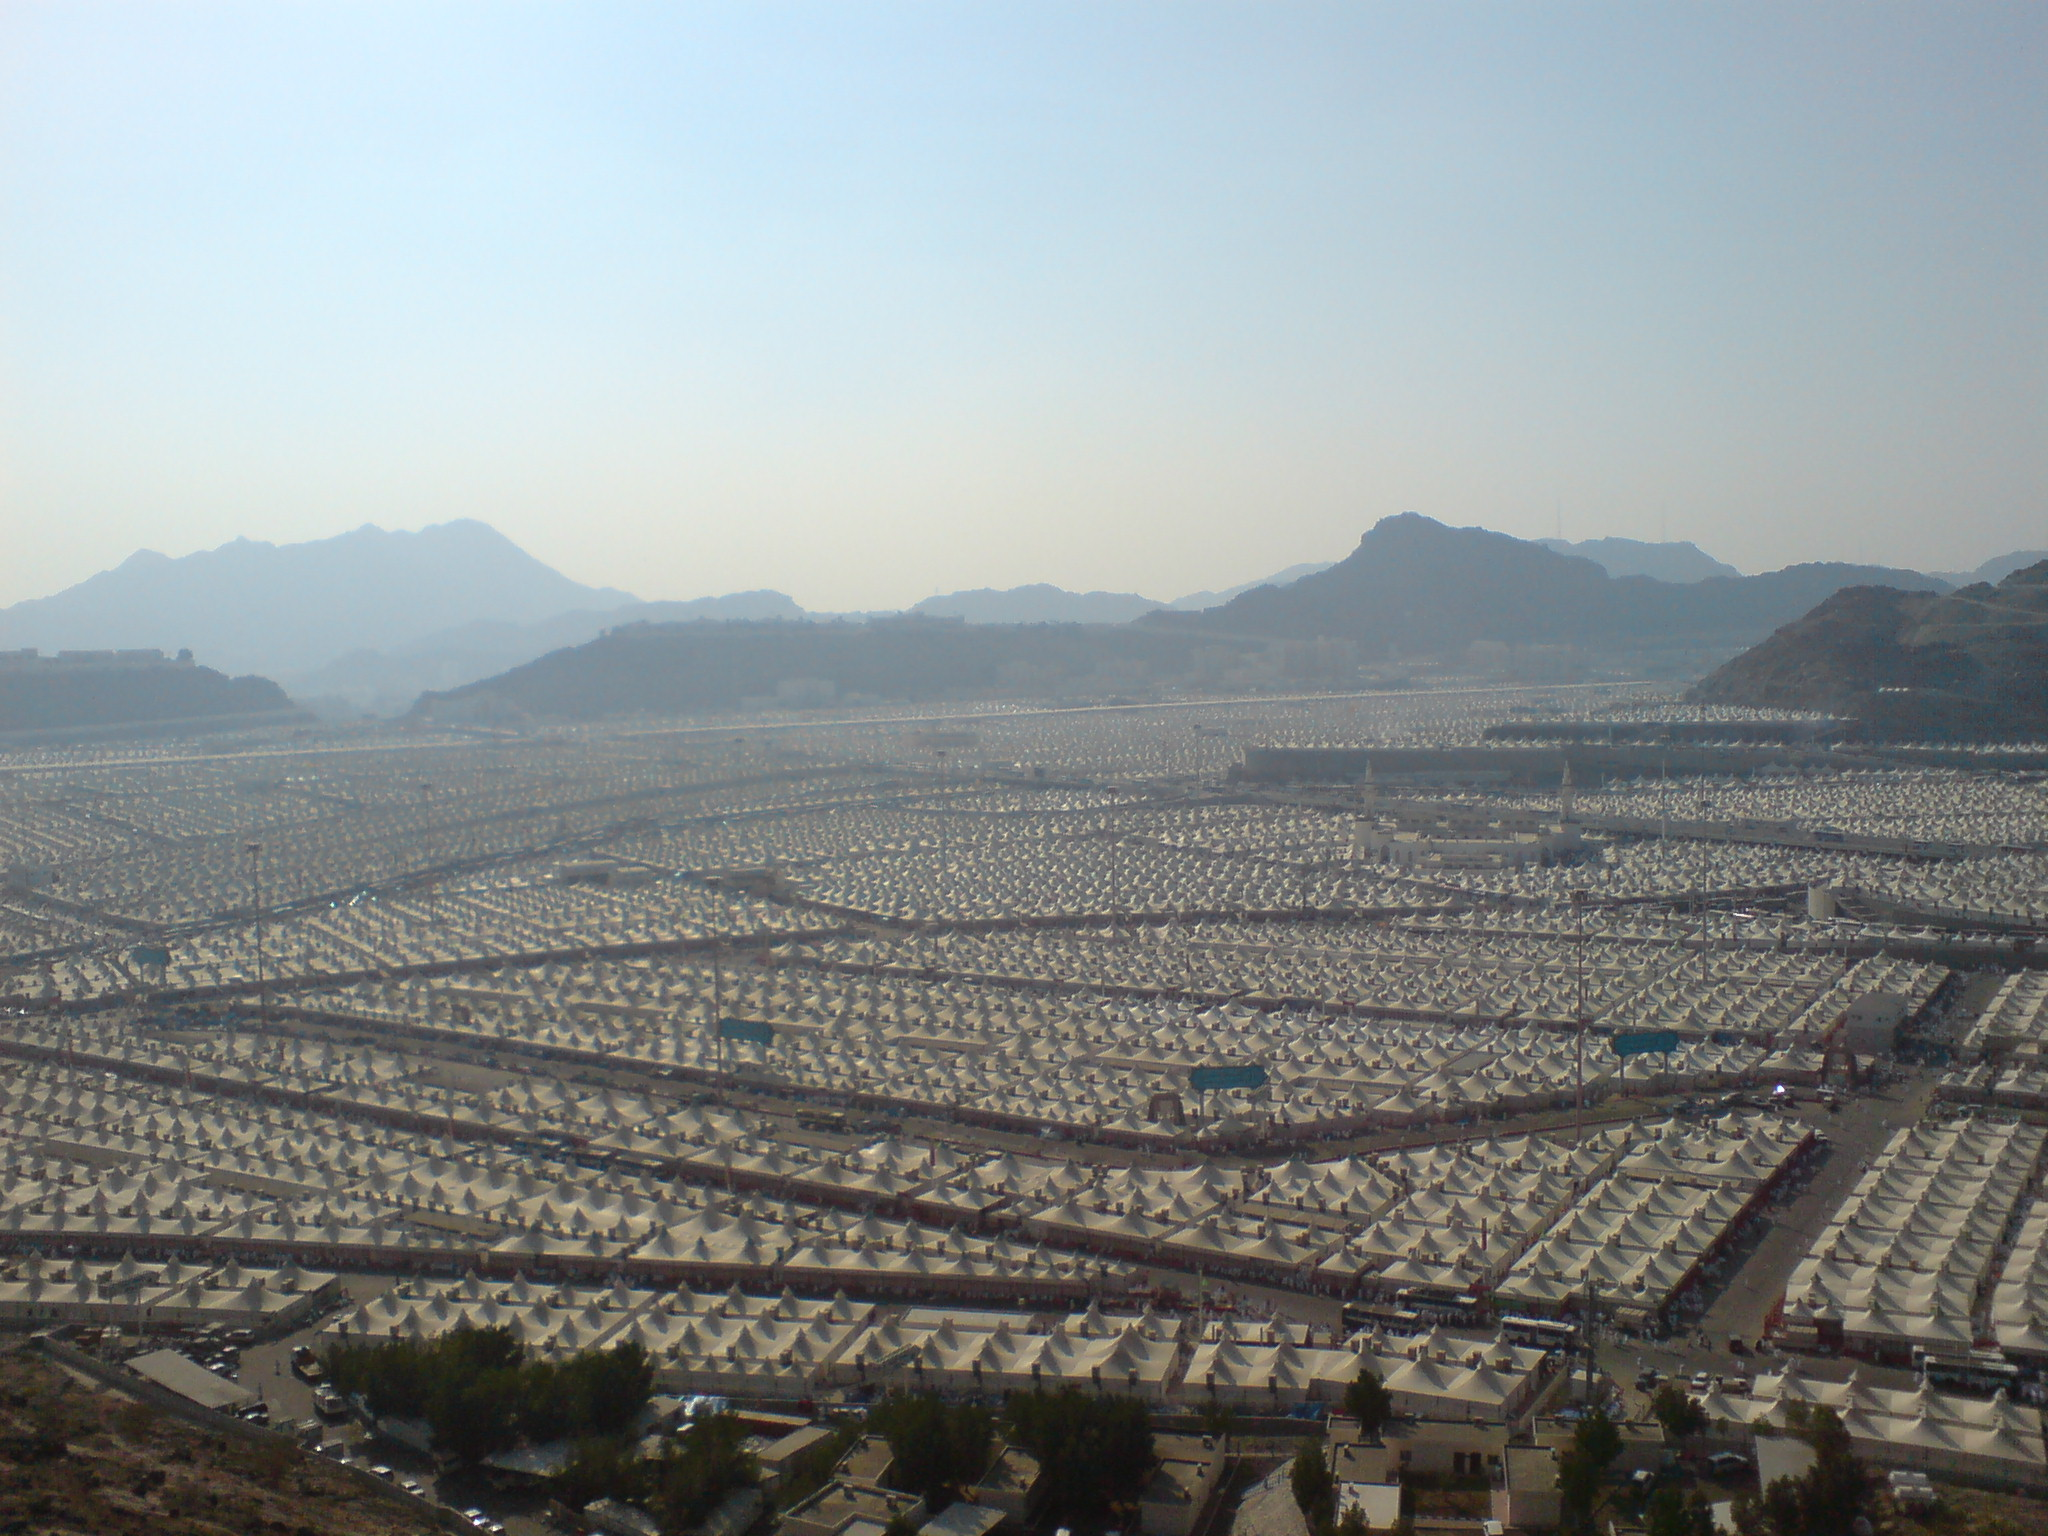 A wide view of the tent city of Mina, with rows of white tents in between streets.